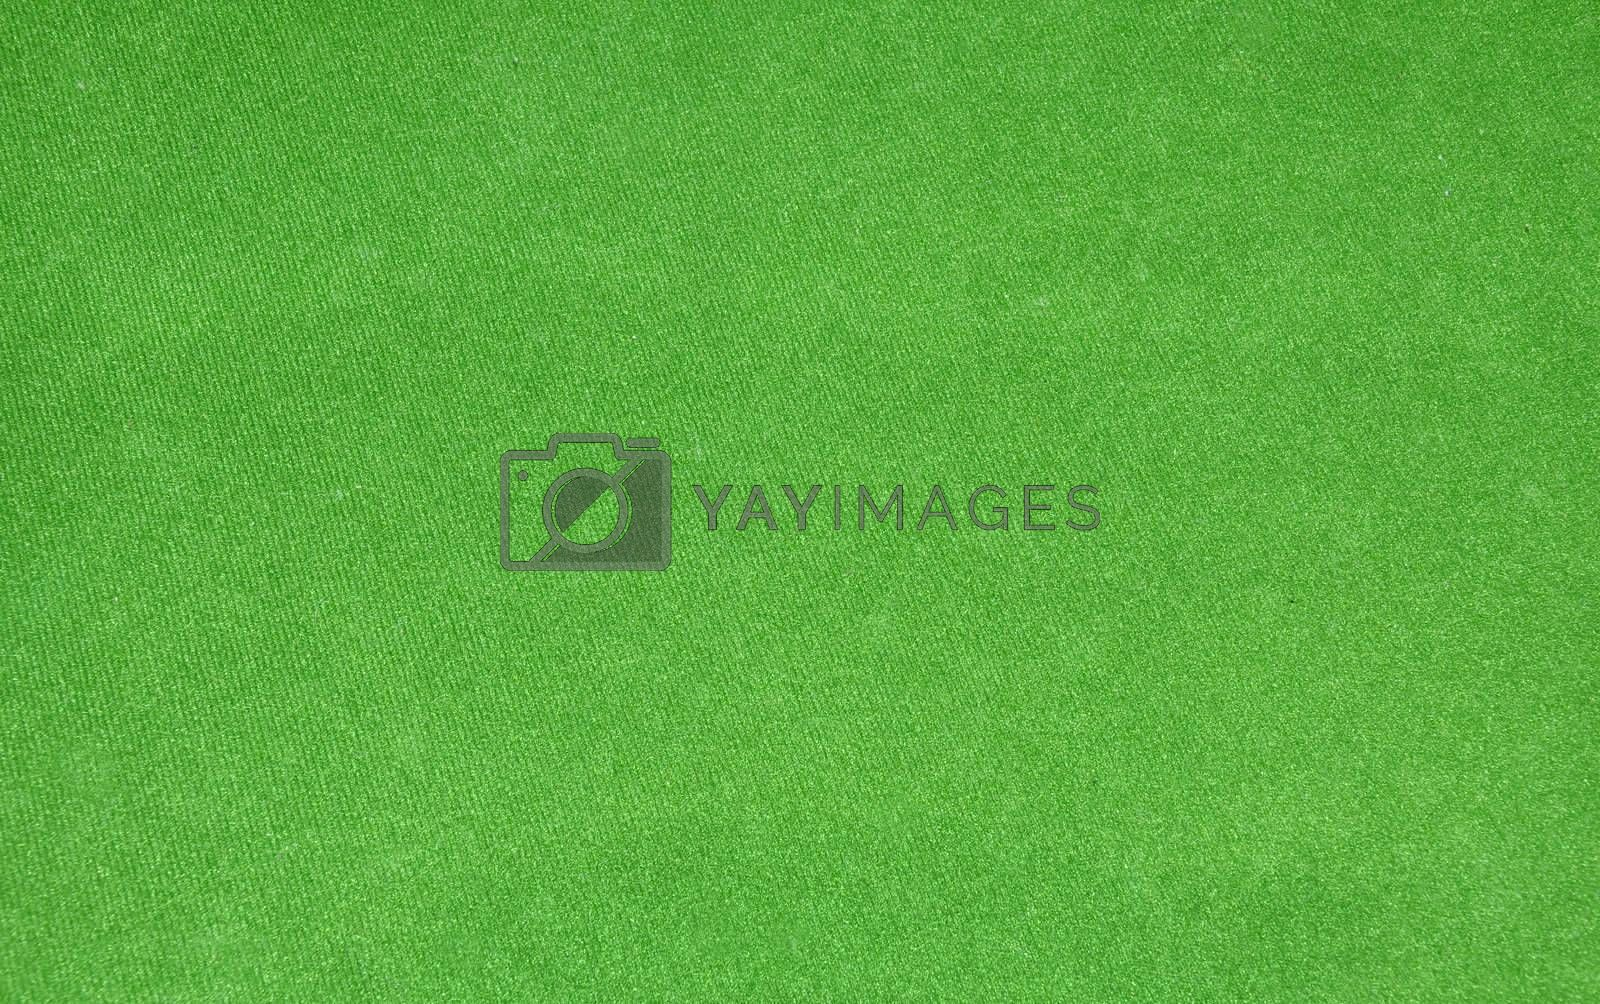 Royalty free image of sold green pool table by cfarmer